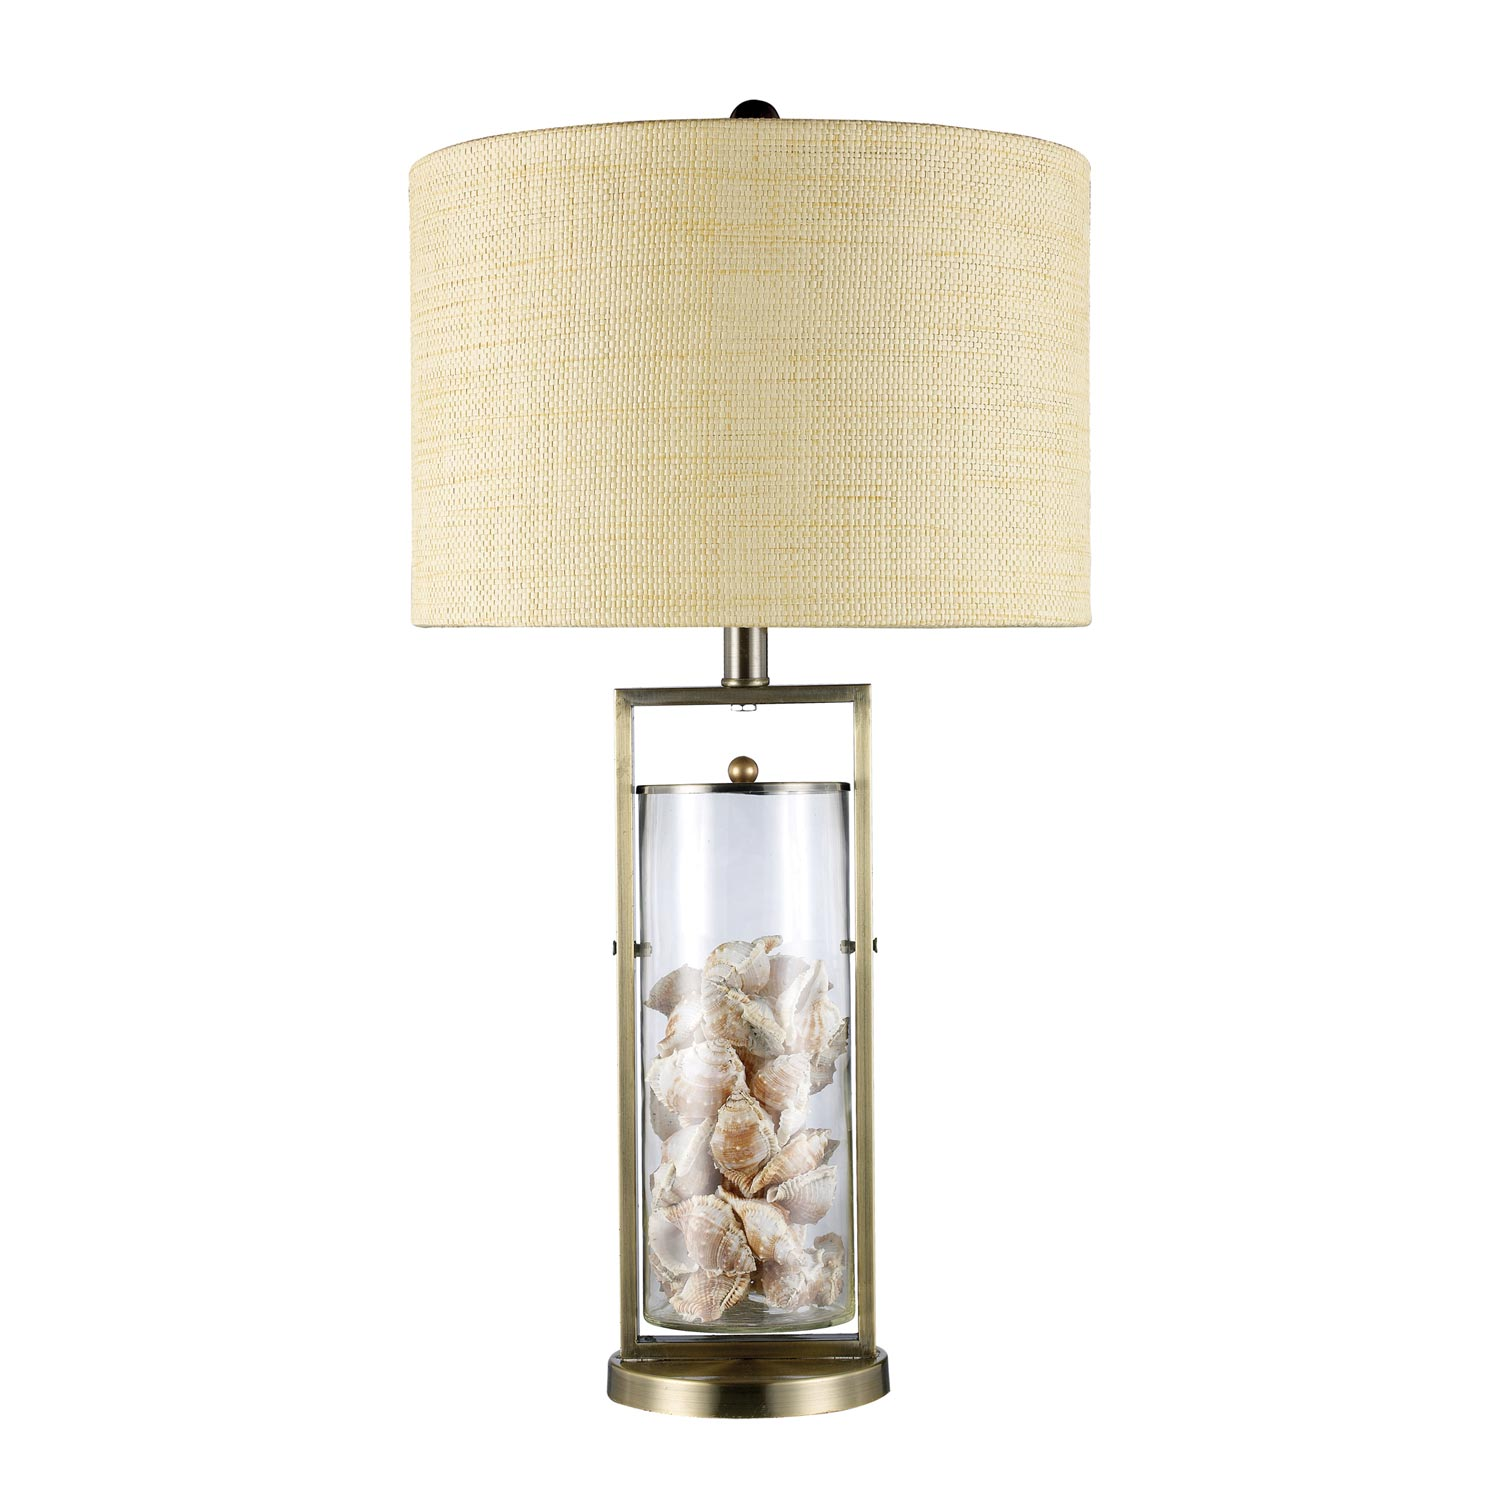 Elk Lighting D1978 Millisle Table Lamp - Antique Brass and Clear Glass